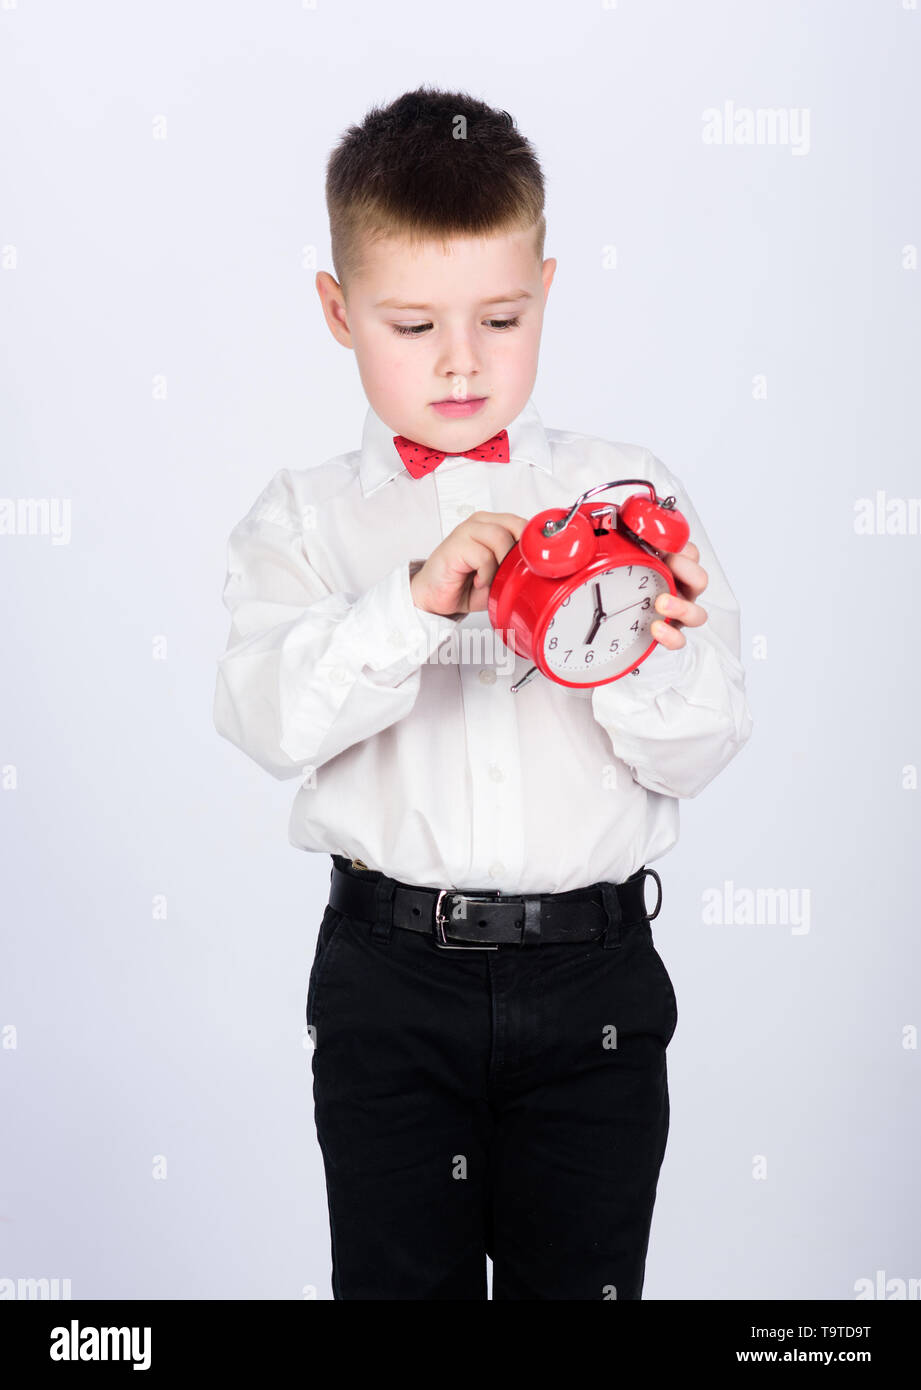 happy child with retro clock in bow tie. little boy with alarm clock. Time to relax. Party time. Businessman. Formal wear. Time management. Morning. t - Stock Image